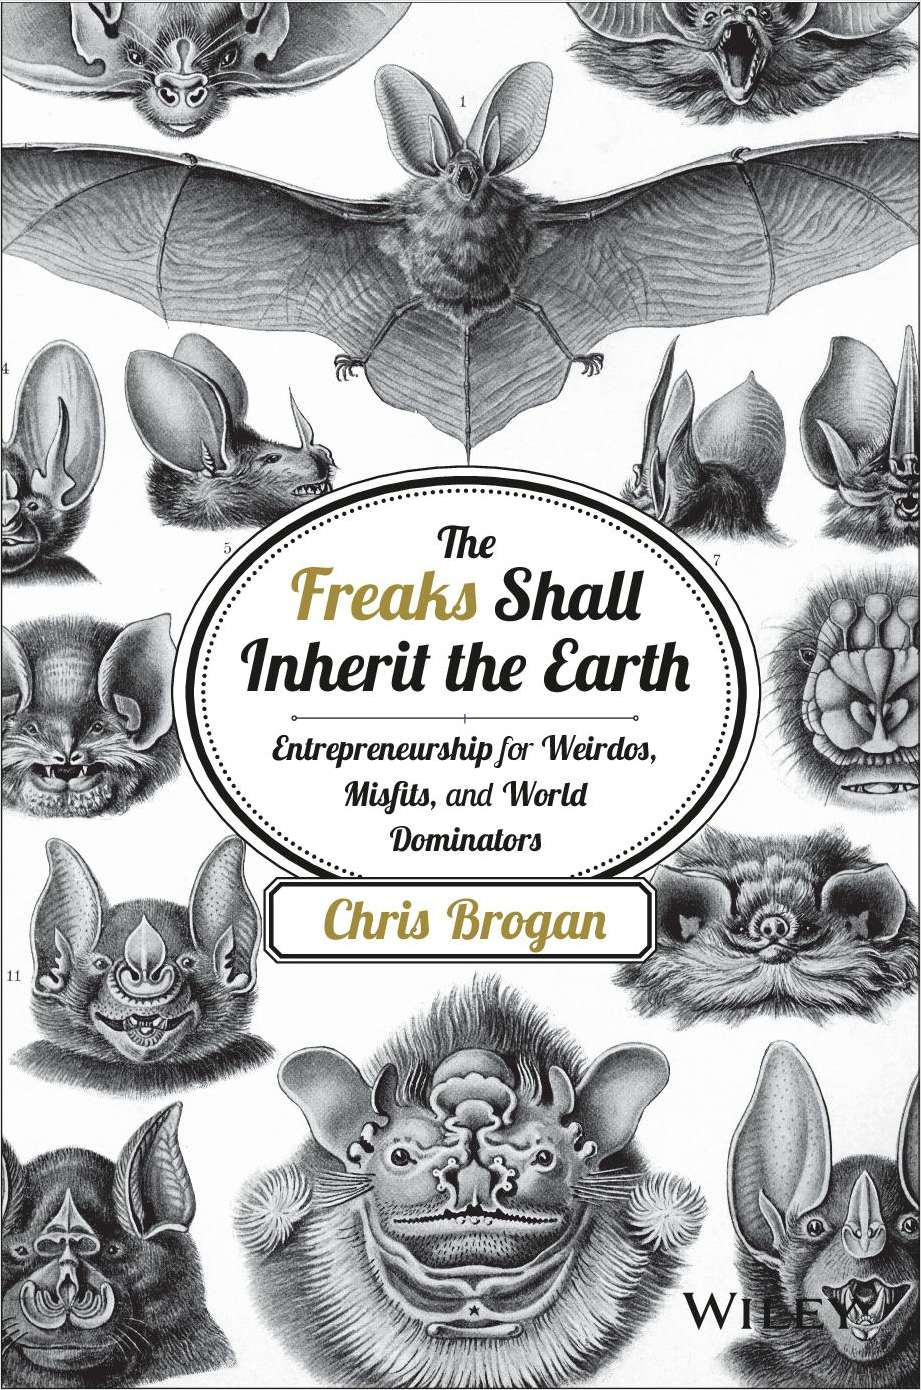 The Freaks Shall Inherit the Earth: Entrepreneurship for Weirdos, Misfits, and World Dominators--Free Sample Chapter